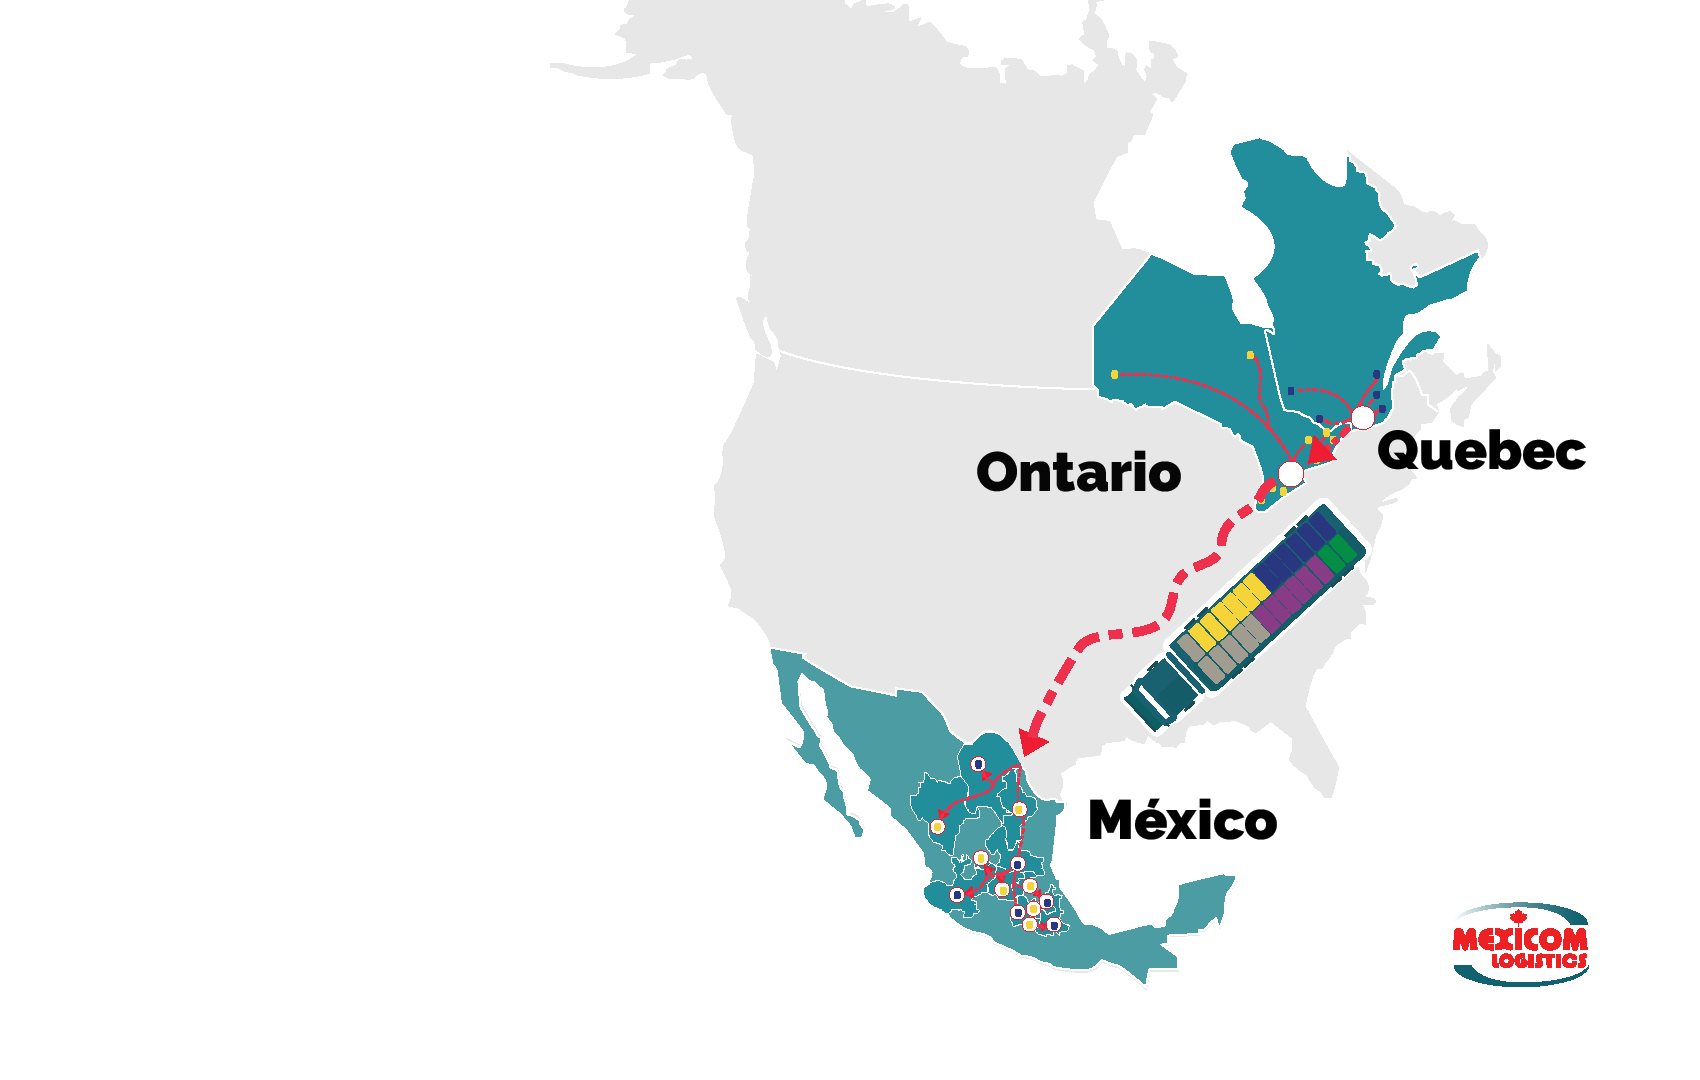 Mexicom Logistics transports commercial goods from Ontario and Quebec to Mexico